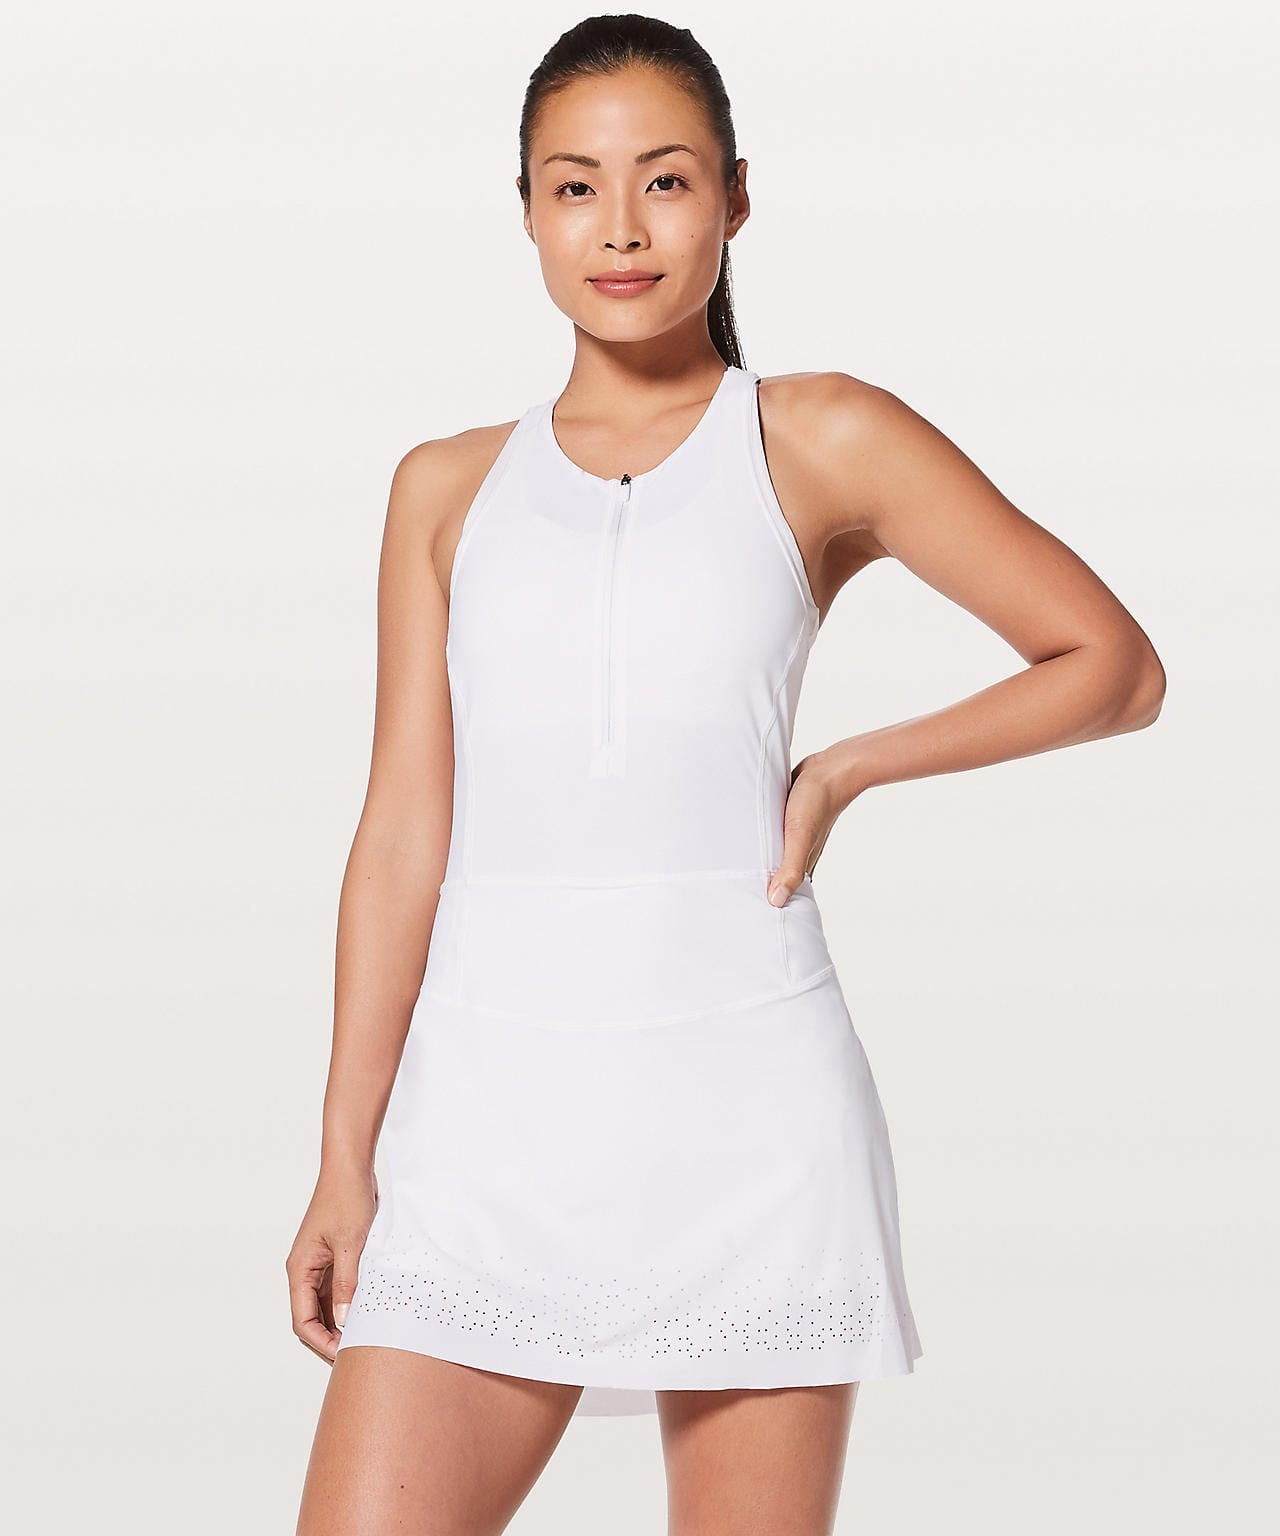 Perf-ect Your Pace Dress